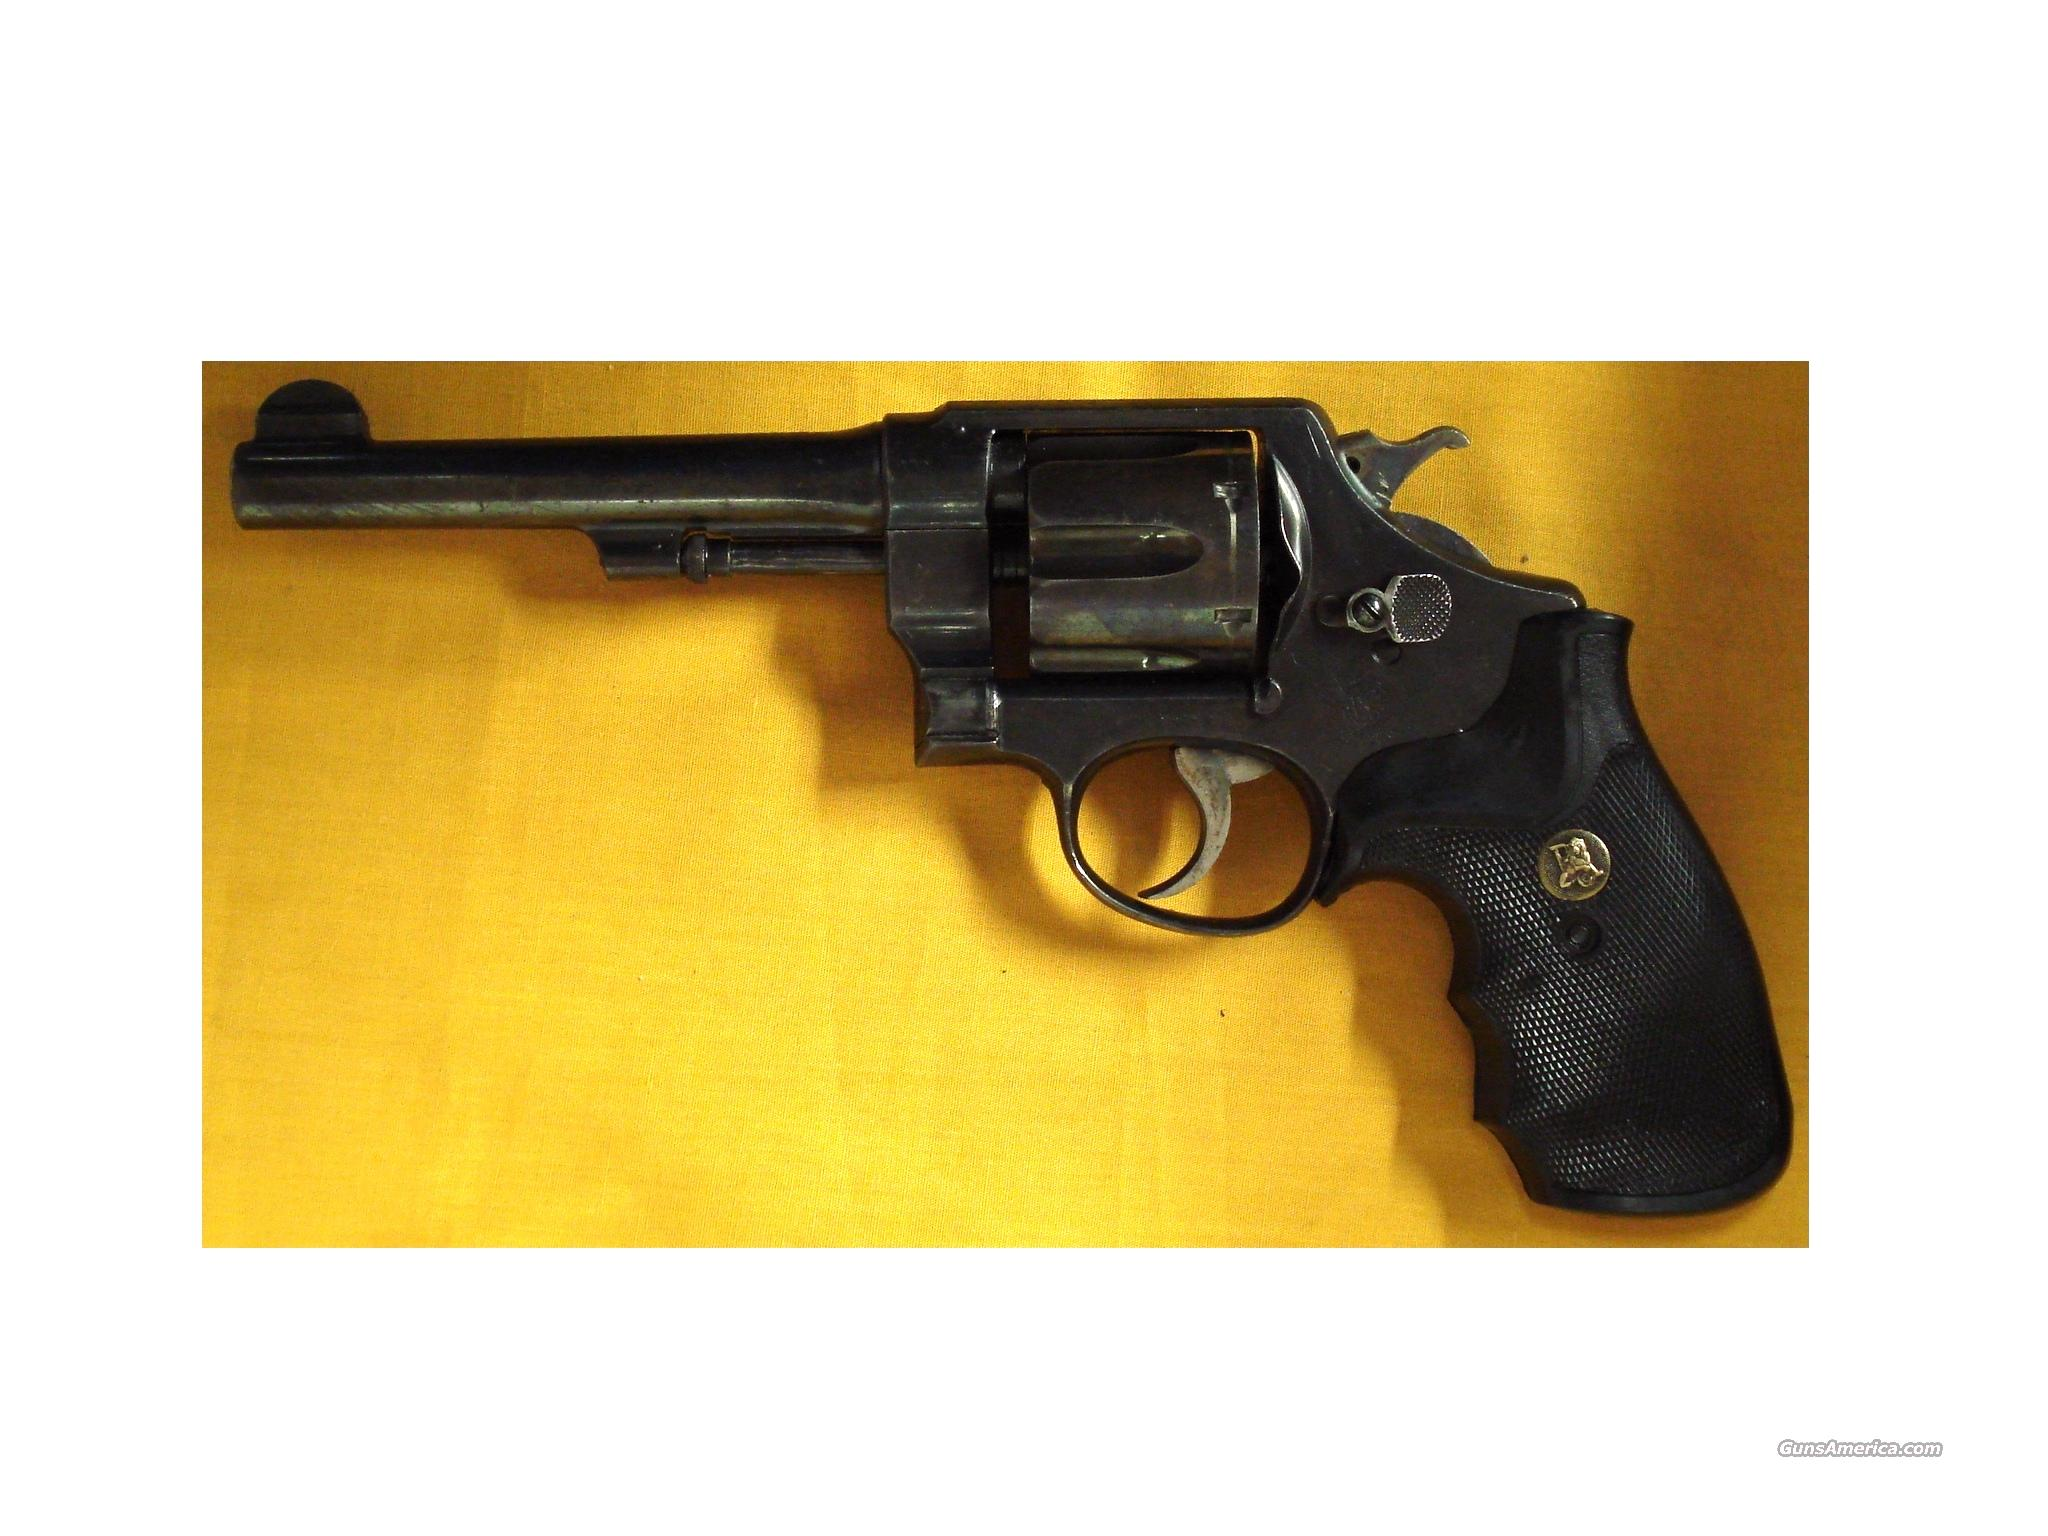 "S&W 1917 HAND EJECTOR .45ACP 5 1/2""BBL  Guns > Pistols > Smith & Wesson Revolvers > Full Frame Revolver"